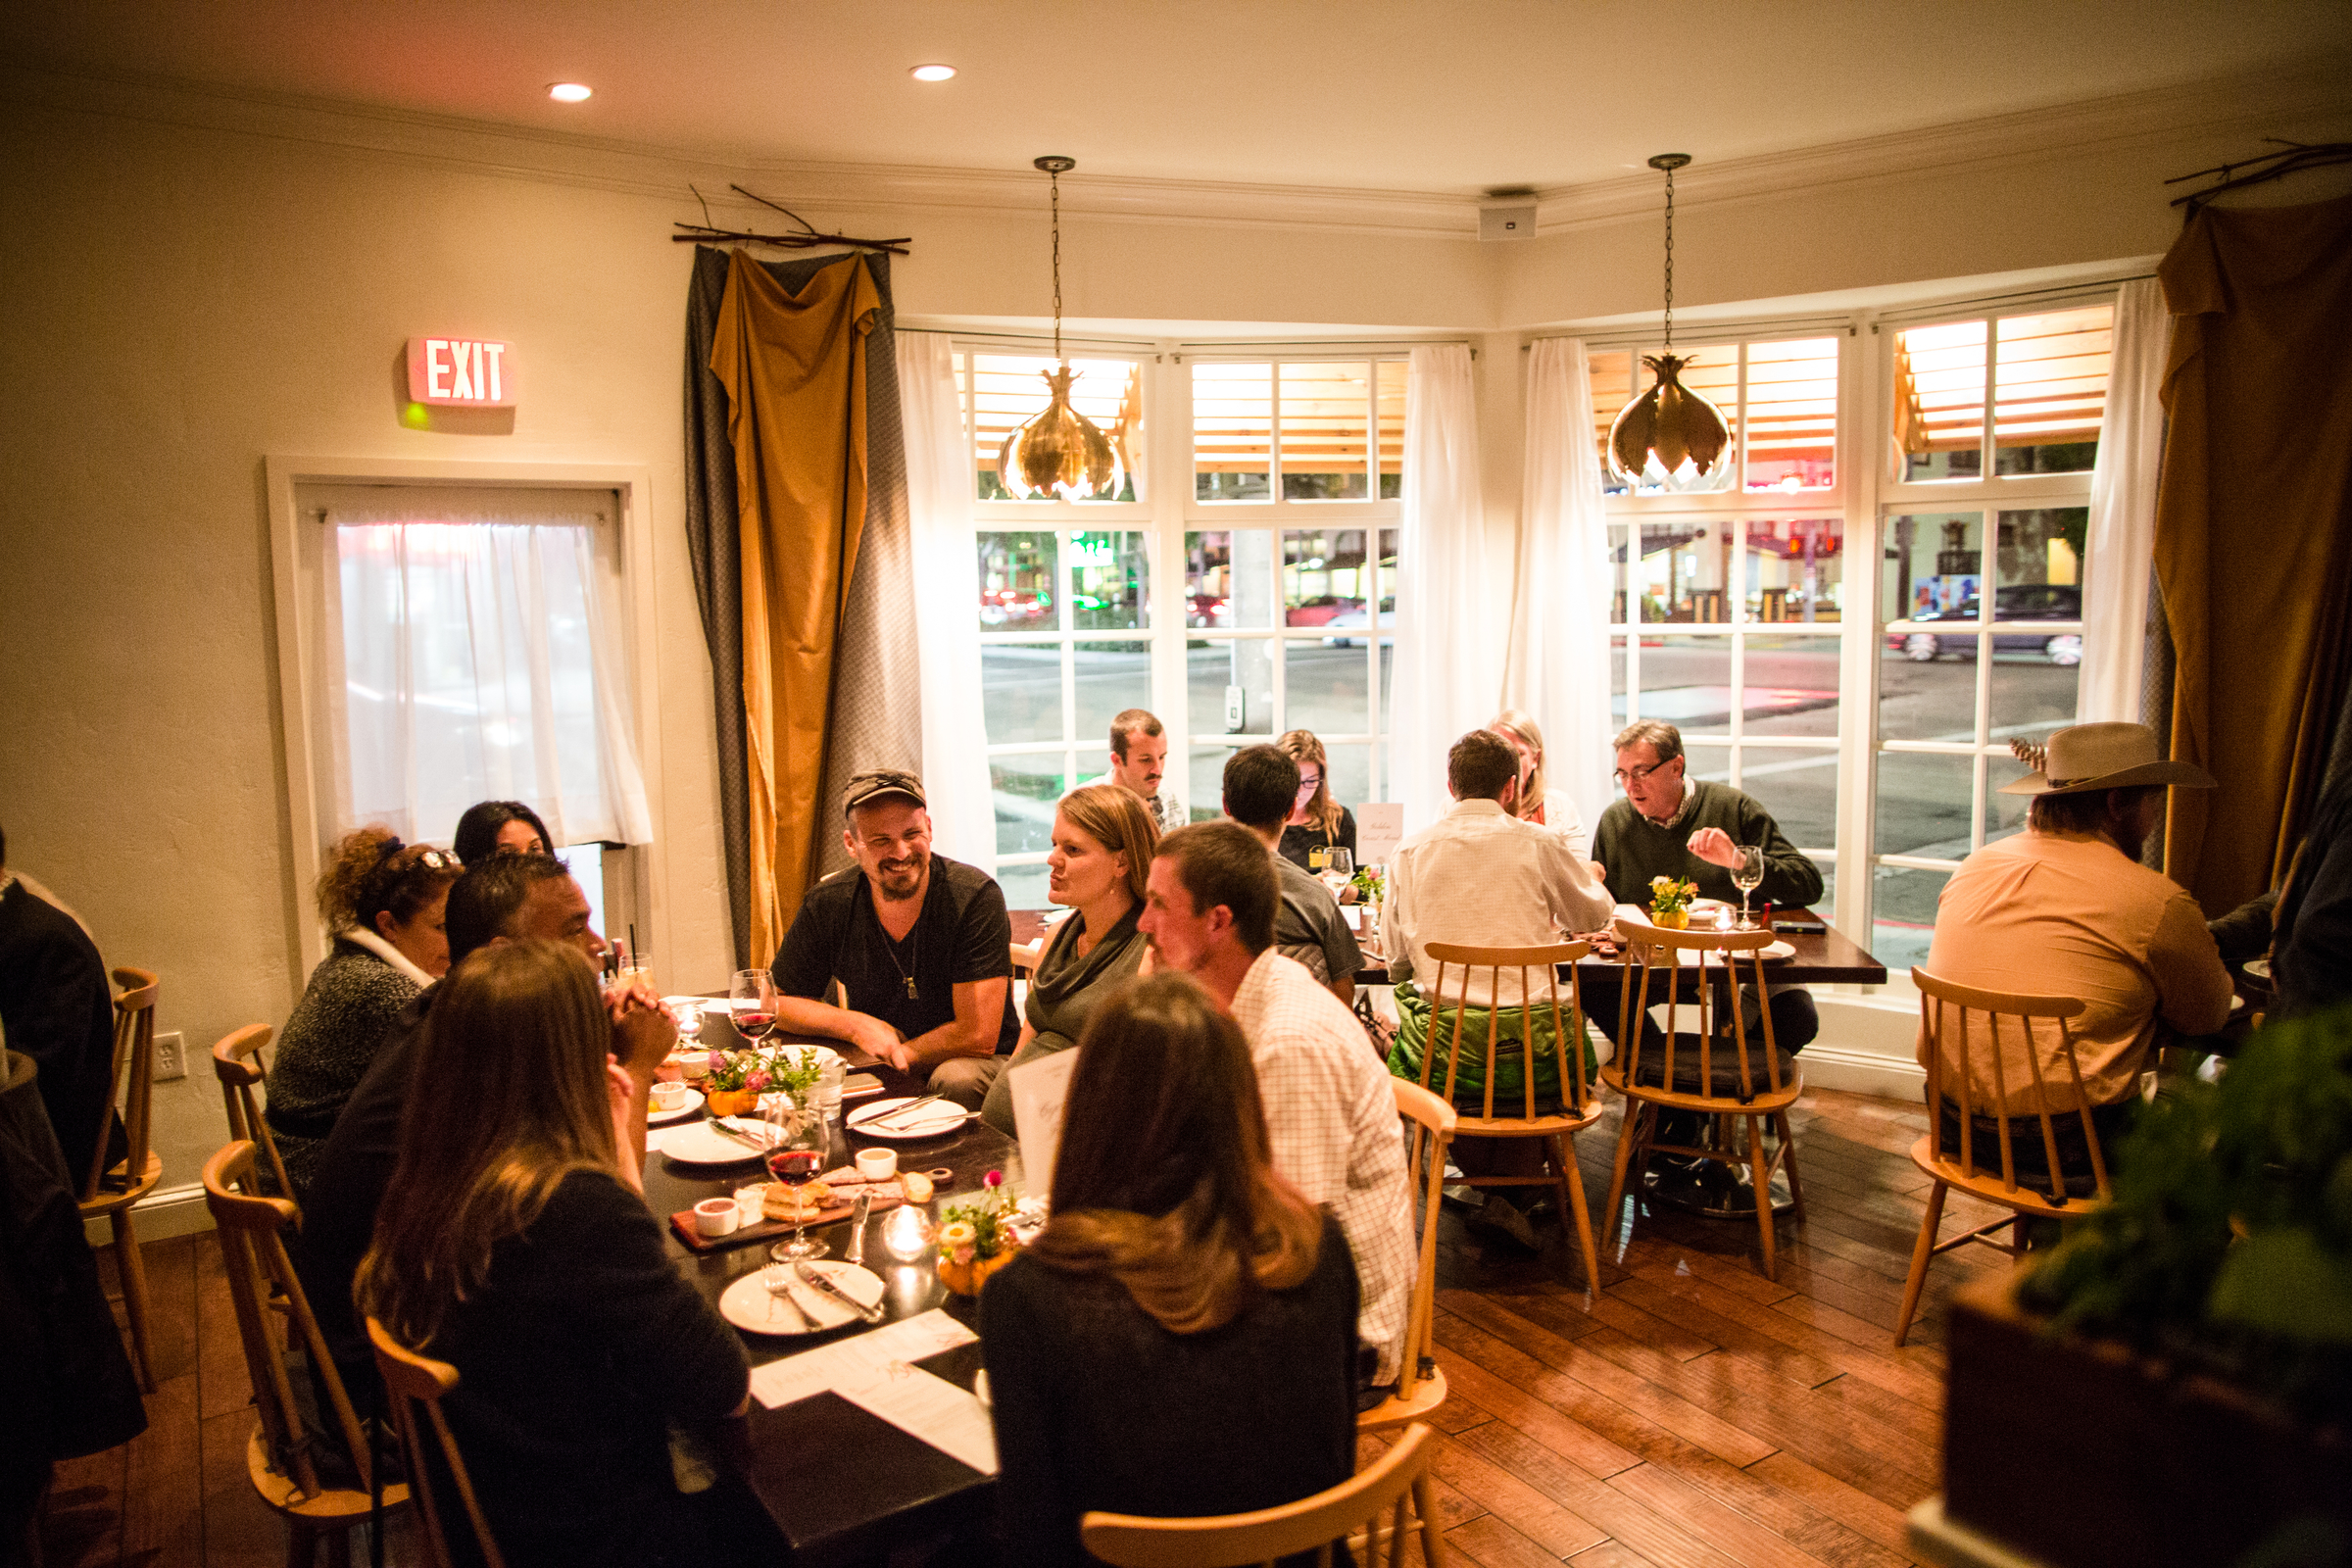 MAIN DINING ROOM   PRIVATE EVENT   Available for 'SEMI-PRIVATE' or 'FULL' Buyout option